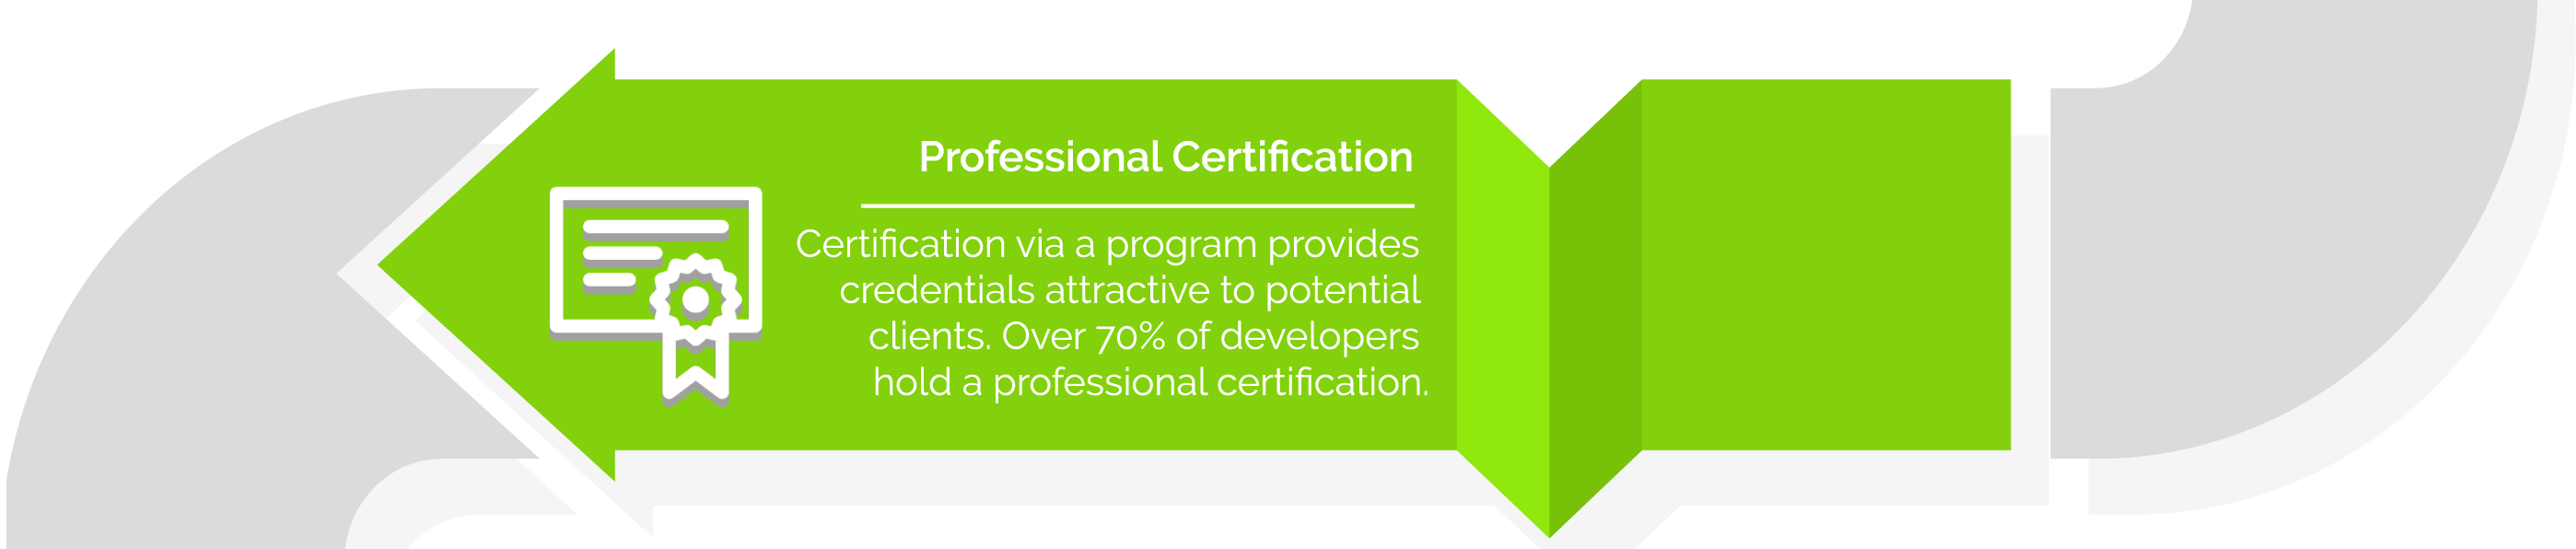 Premium Membership - Certification via a program provides credentials attractive to potential clients. Over 70% of developers hold a professional certification.